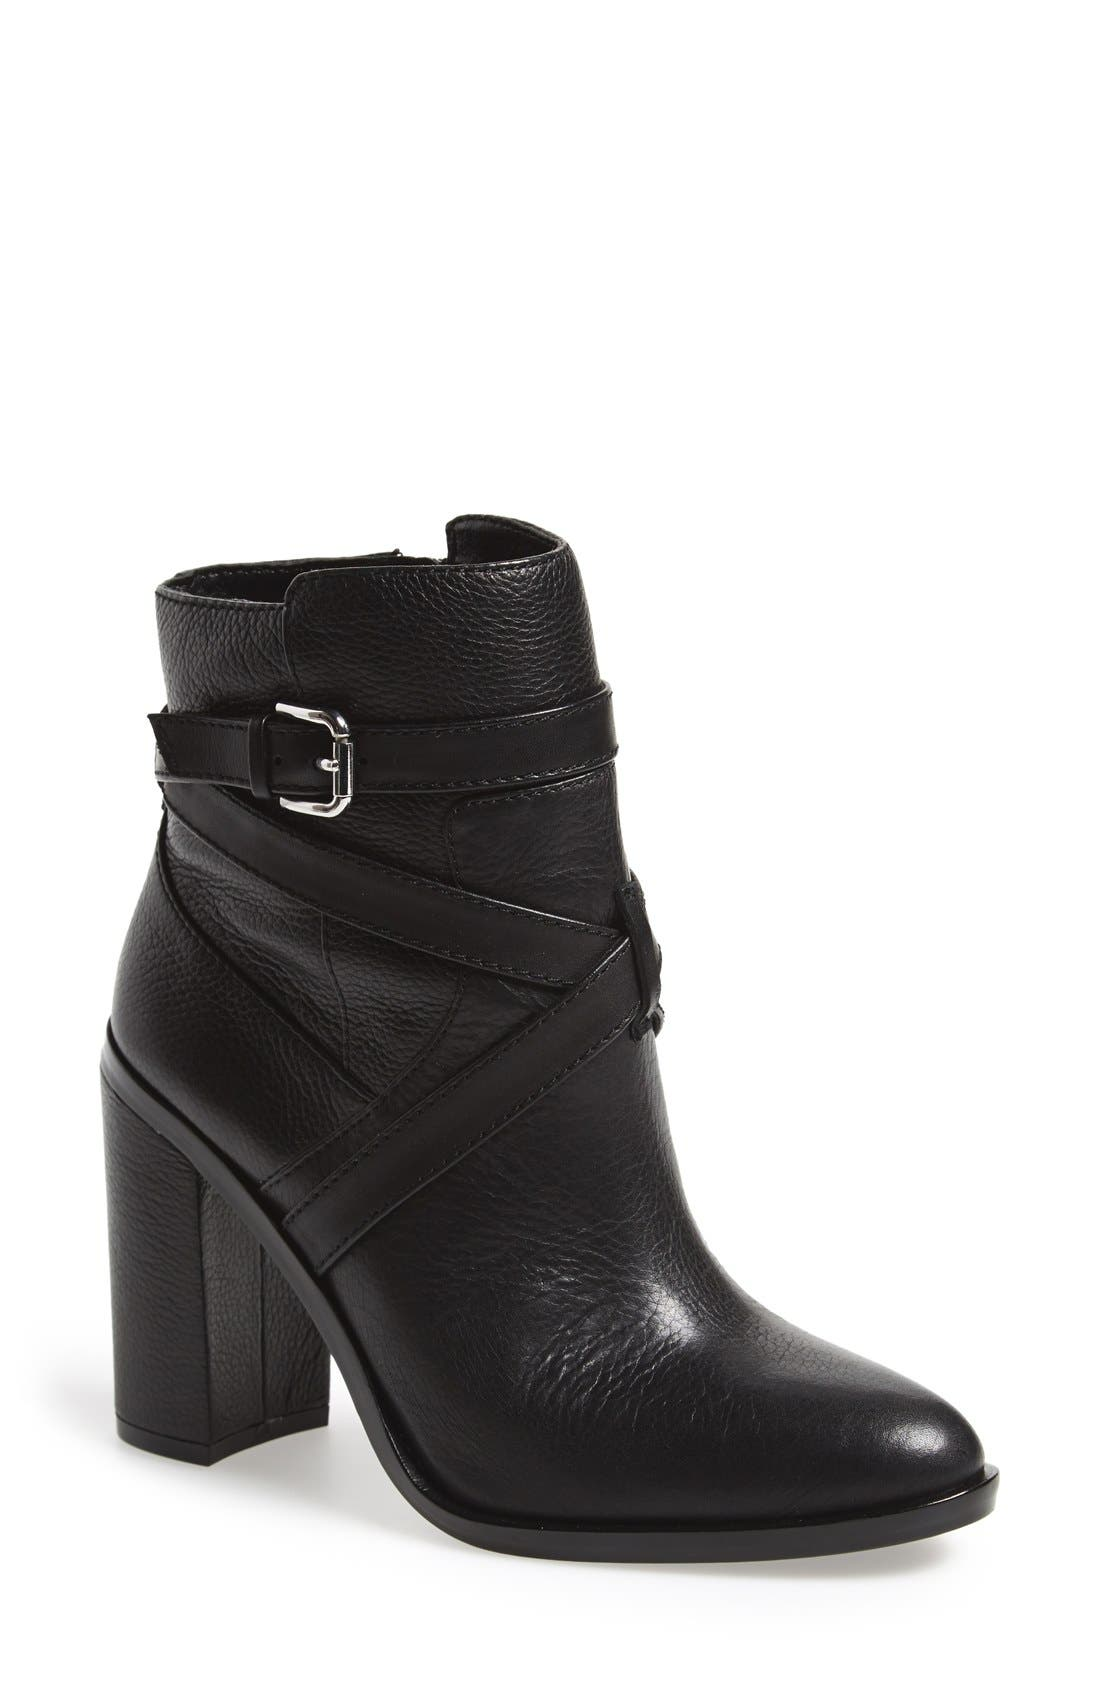 'Gravell' Belted Boot,                             Main thumbnail 1, color,                             001